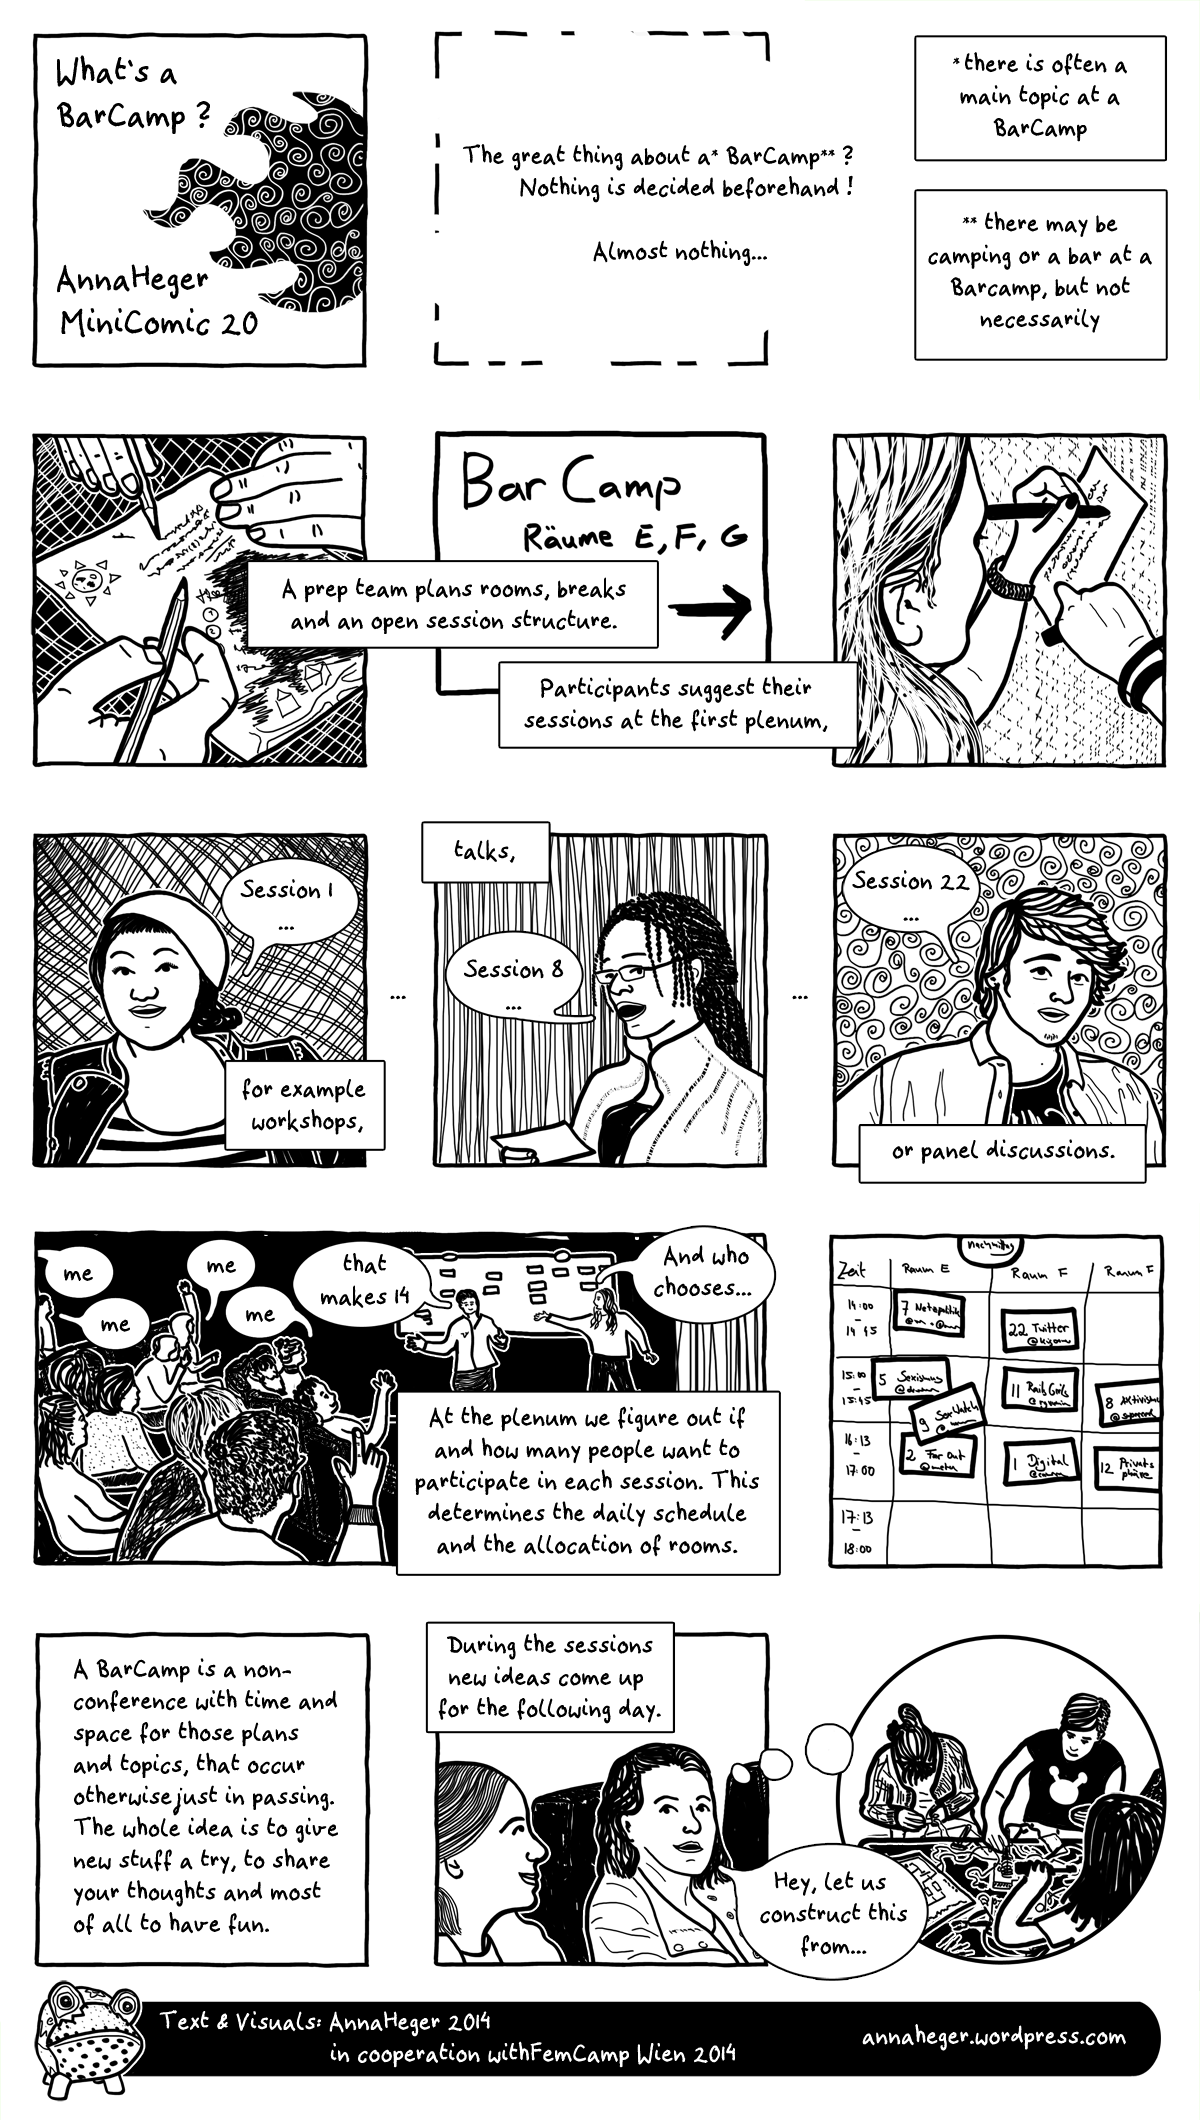 Minicomic 20 : What's a BarCamp?, the entire comic is transcribed to plain text